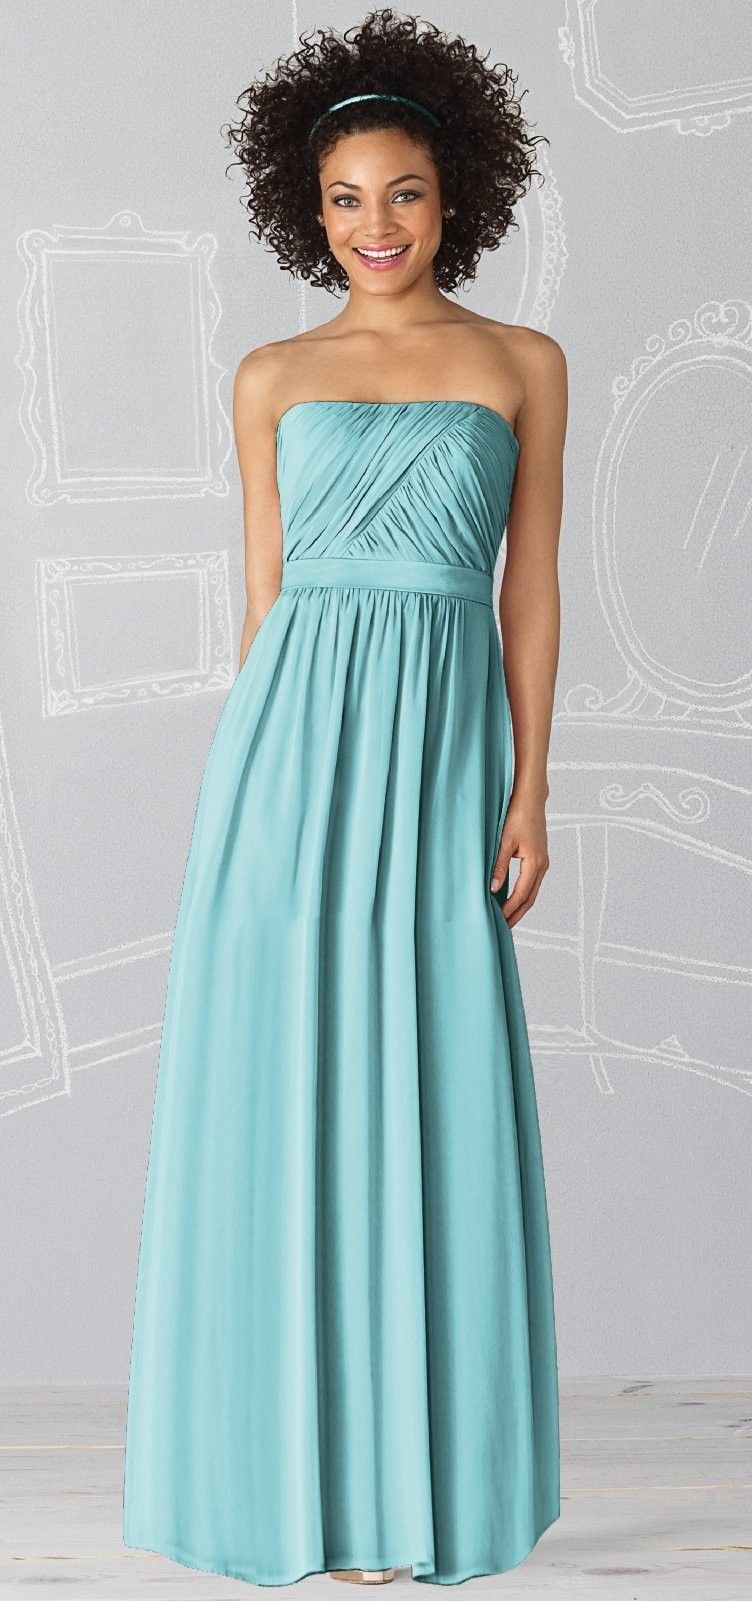 After Six Style 6621 Bridesmaid Dress in Periwinkle | Clothes ...